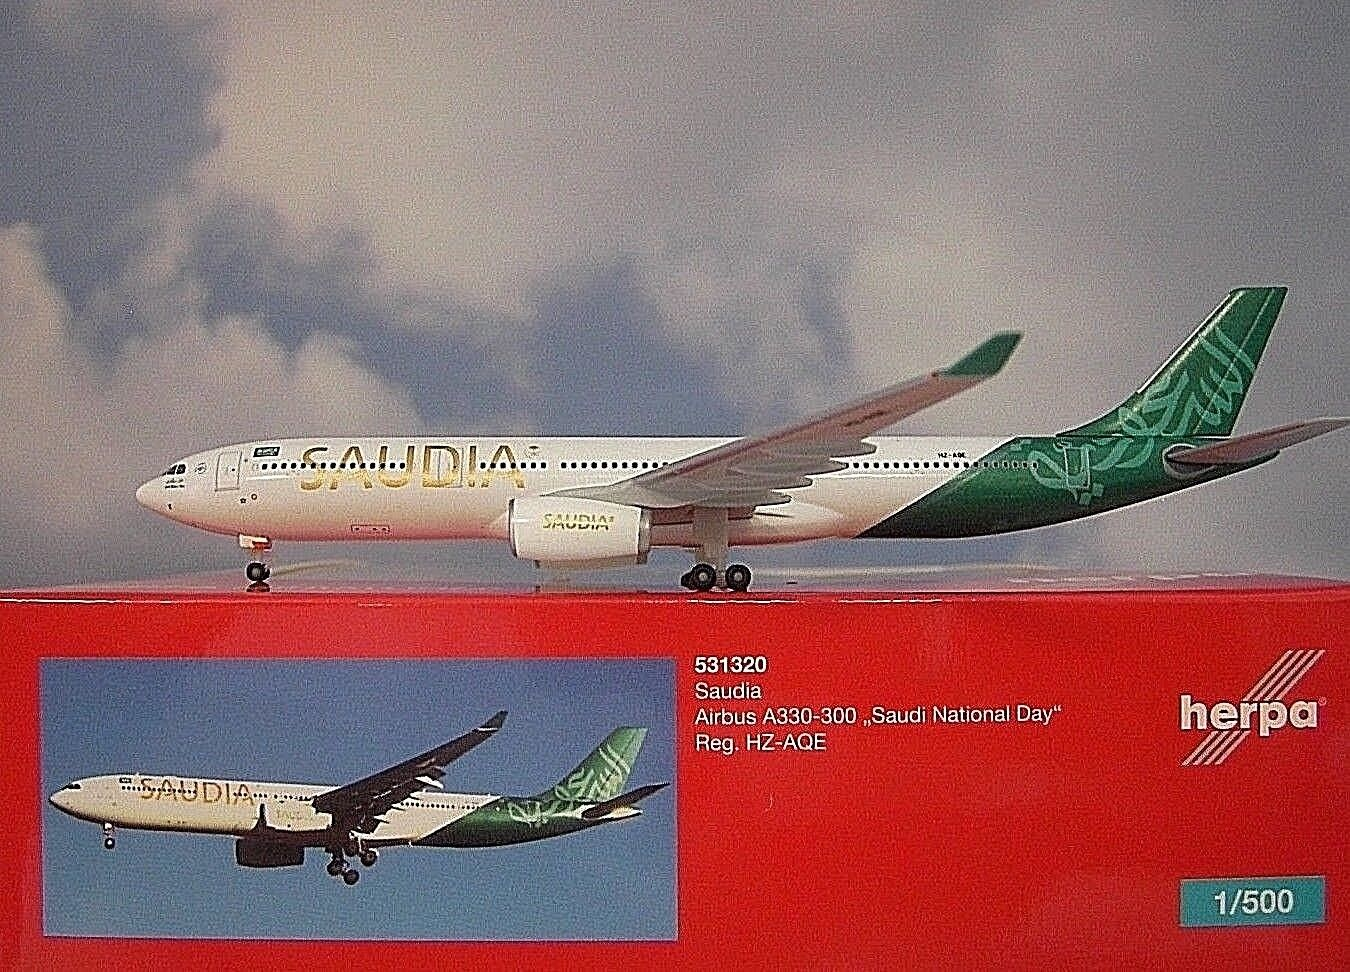 Herpa Wings 1 500 Airbus A330-300 Saudia Hz-Aqe 531320 Modellairport500